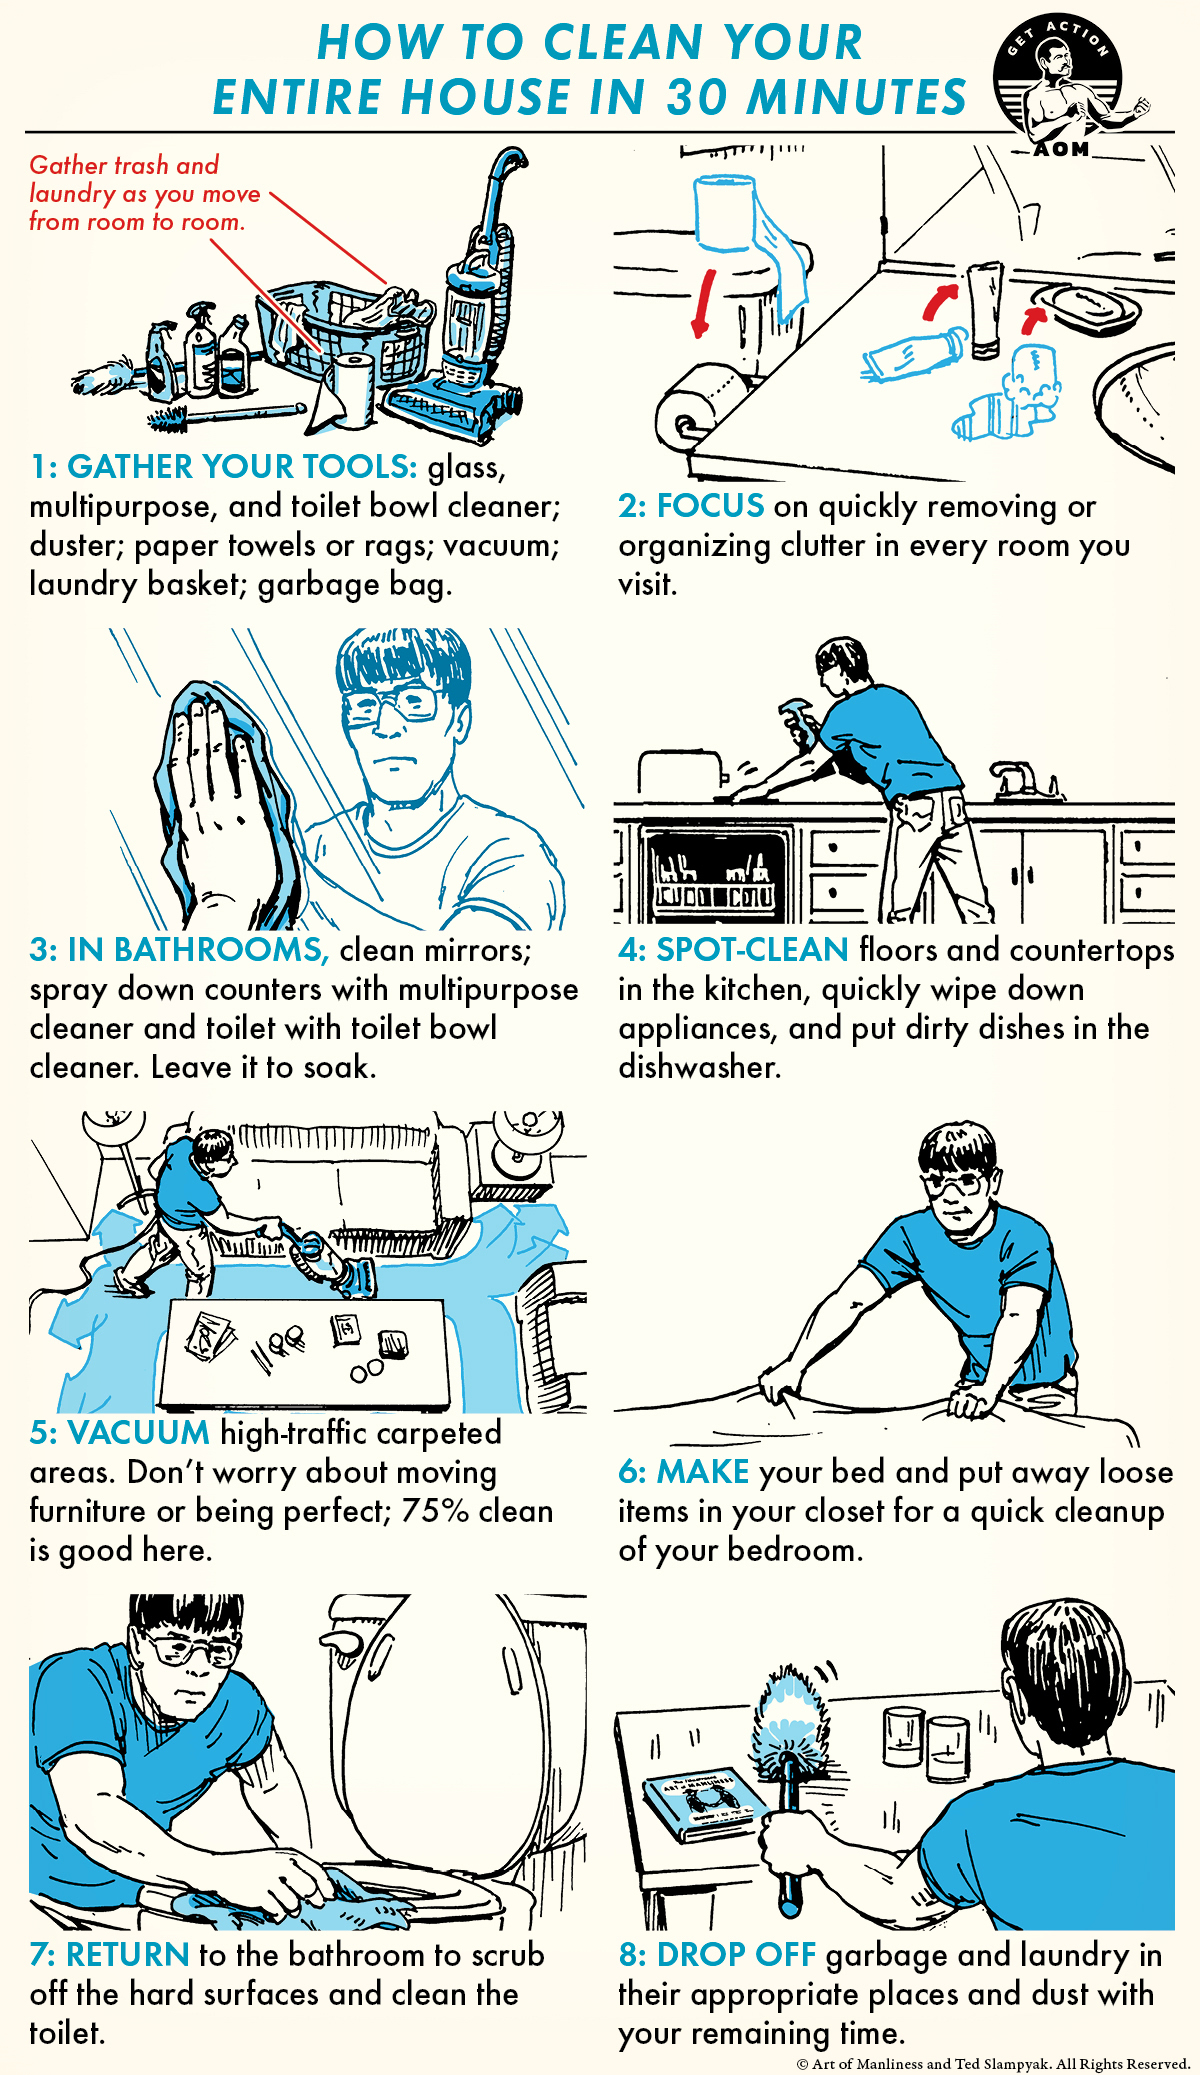 Different steps are shown to clean the Entire House in 30 Minutes.